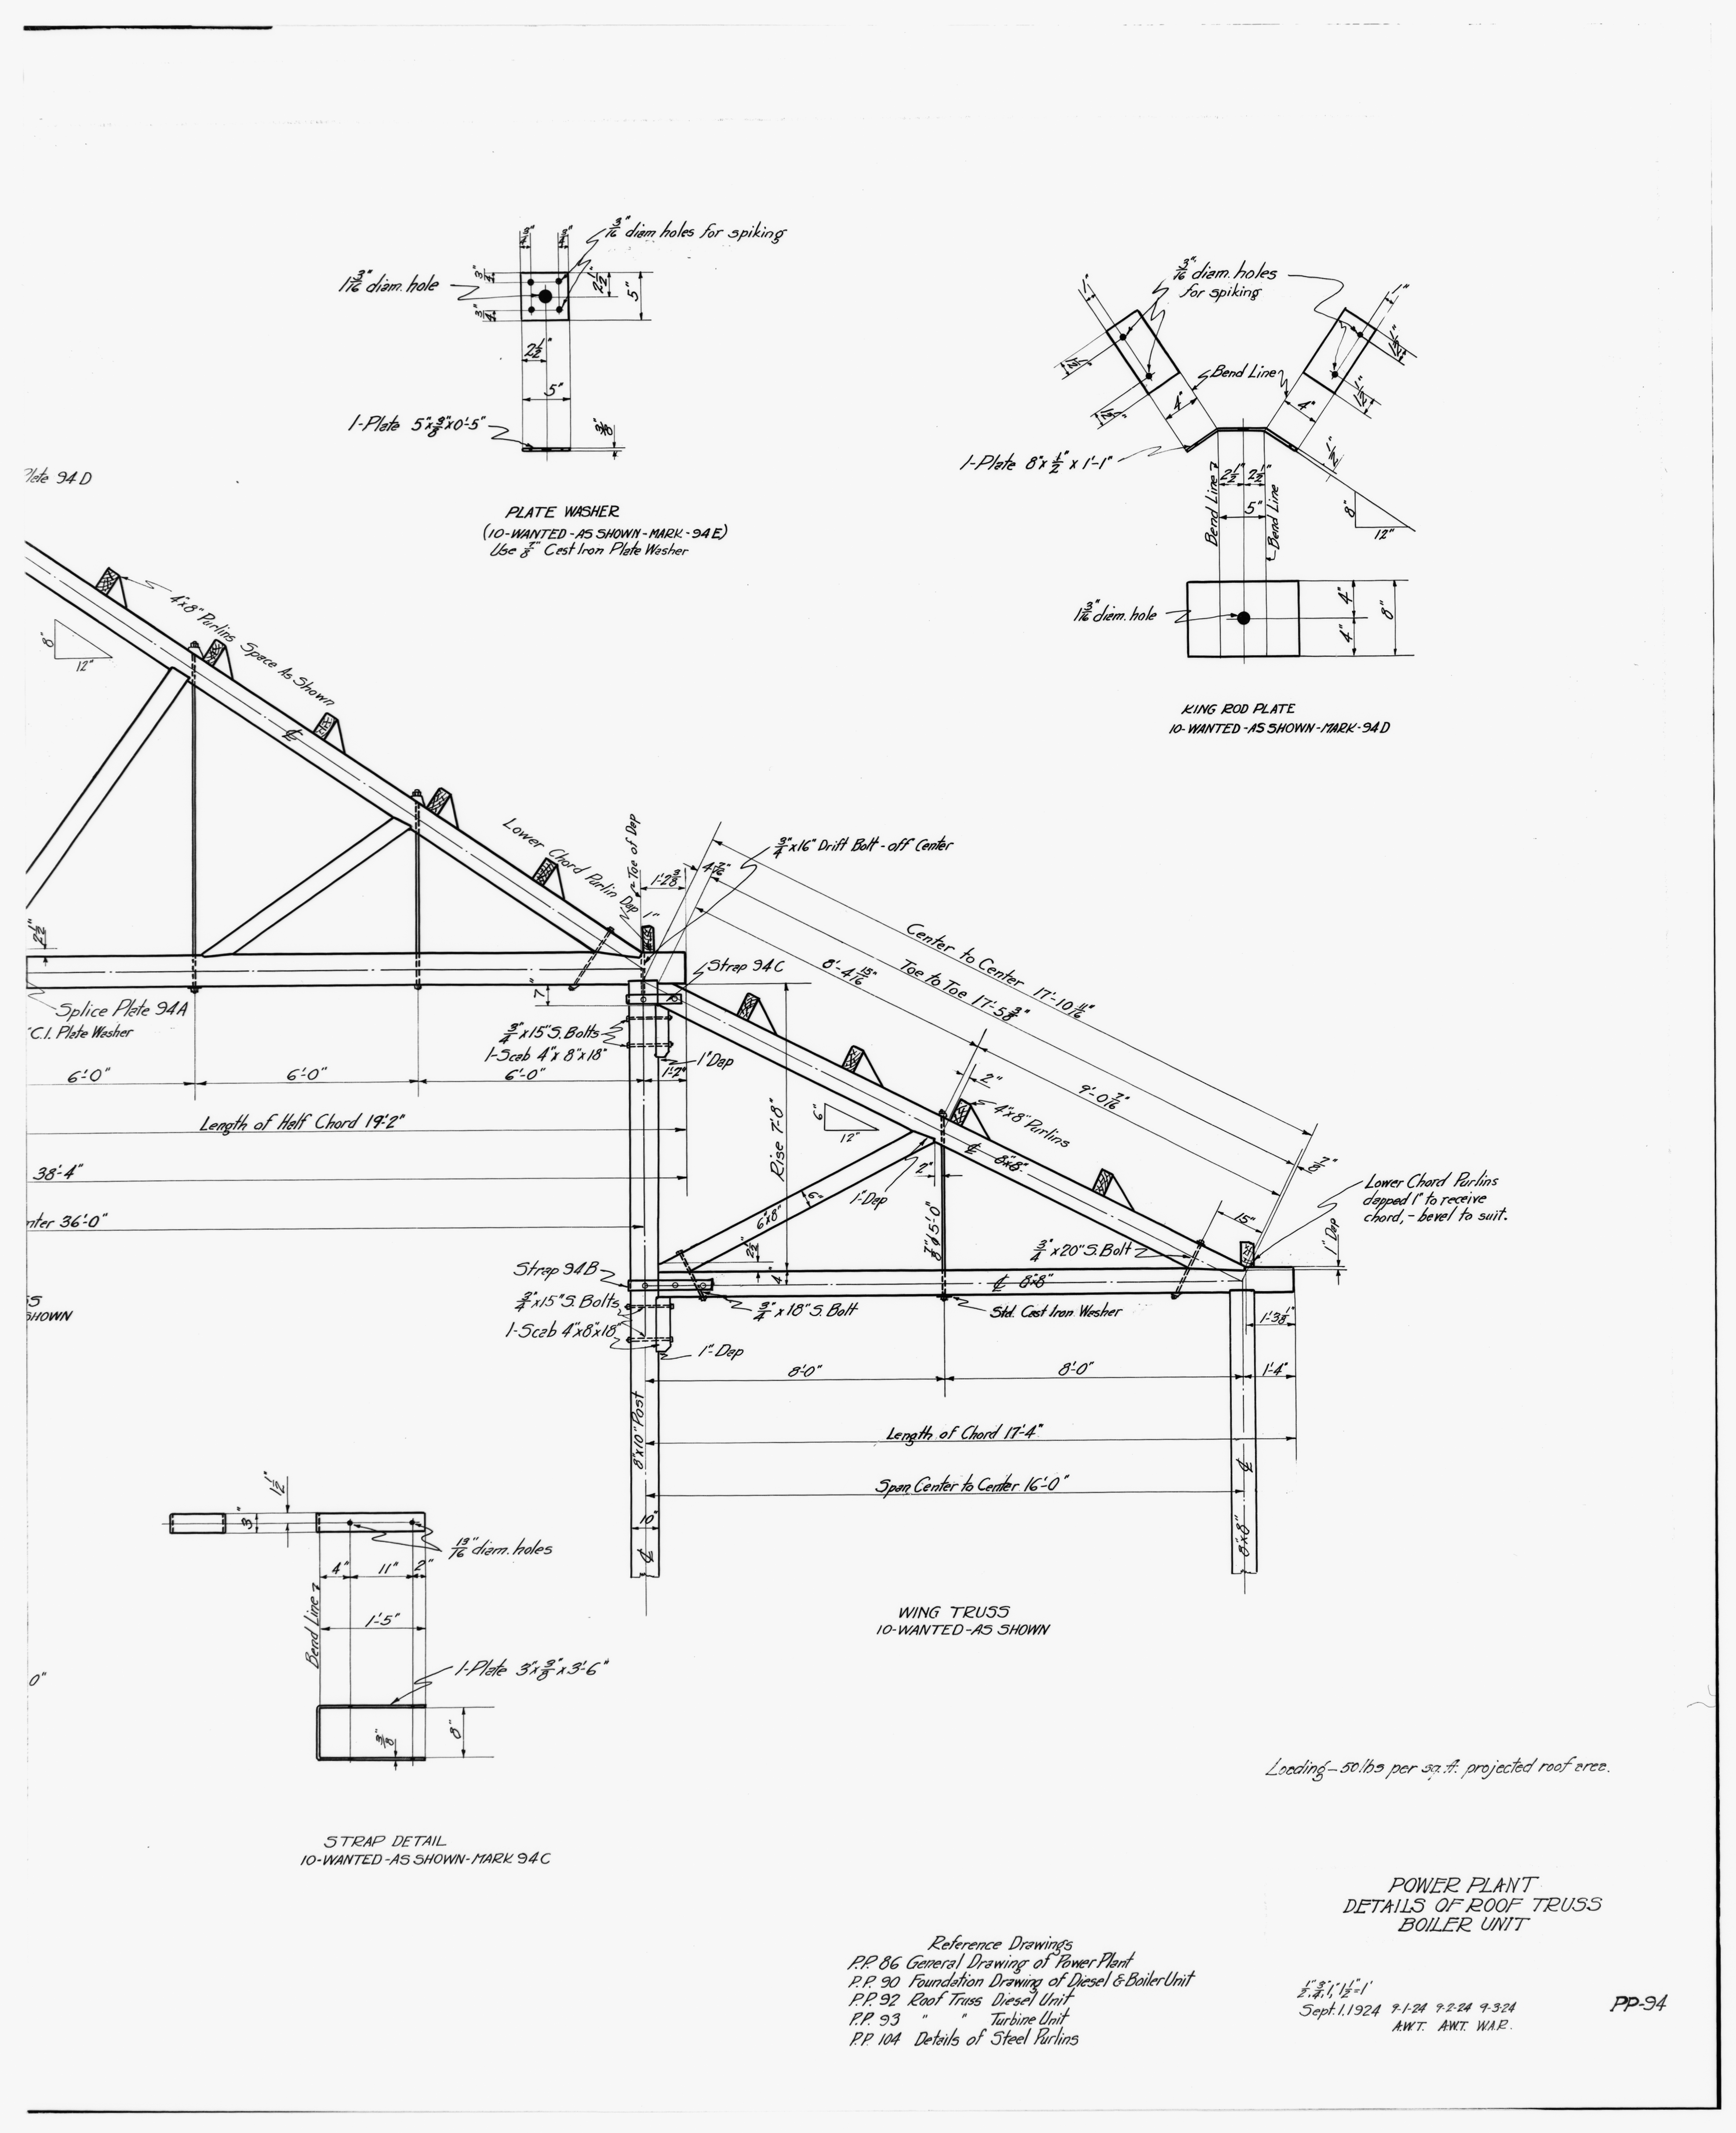 File 30 Photocopy Of Drawing Of Power Plant Details Of